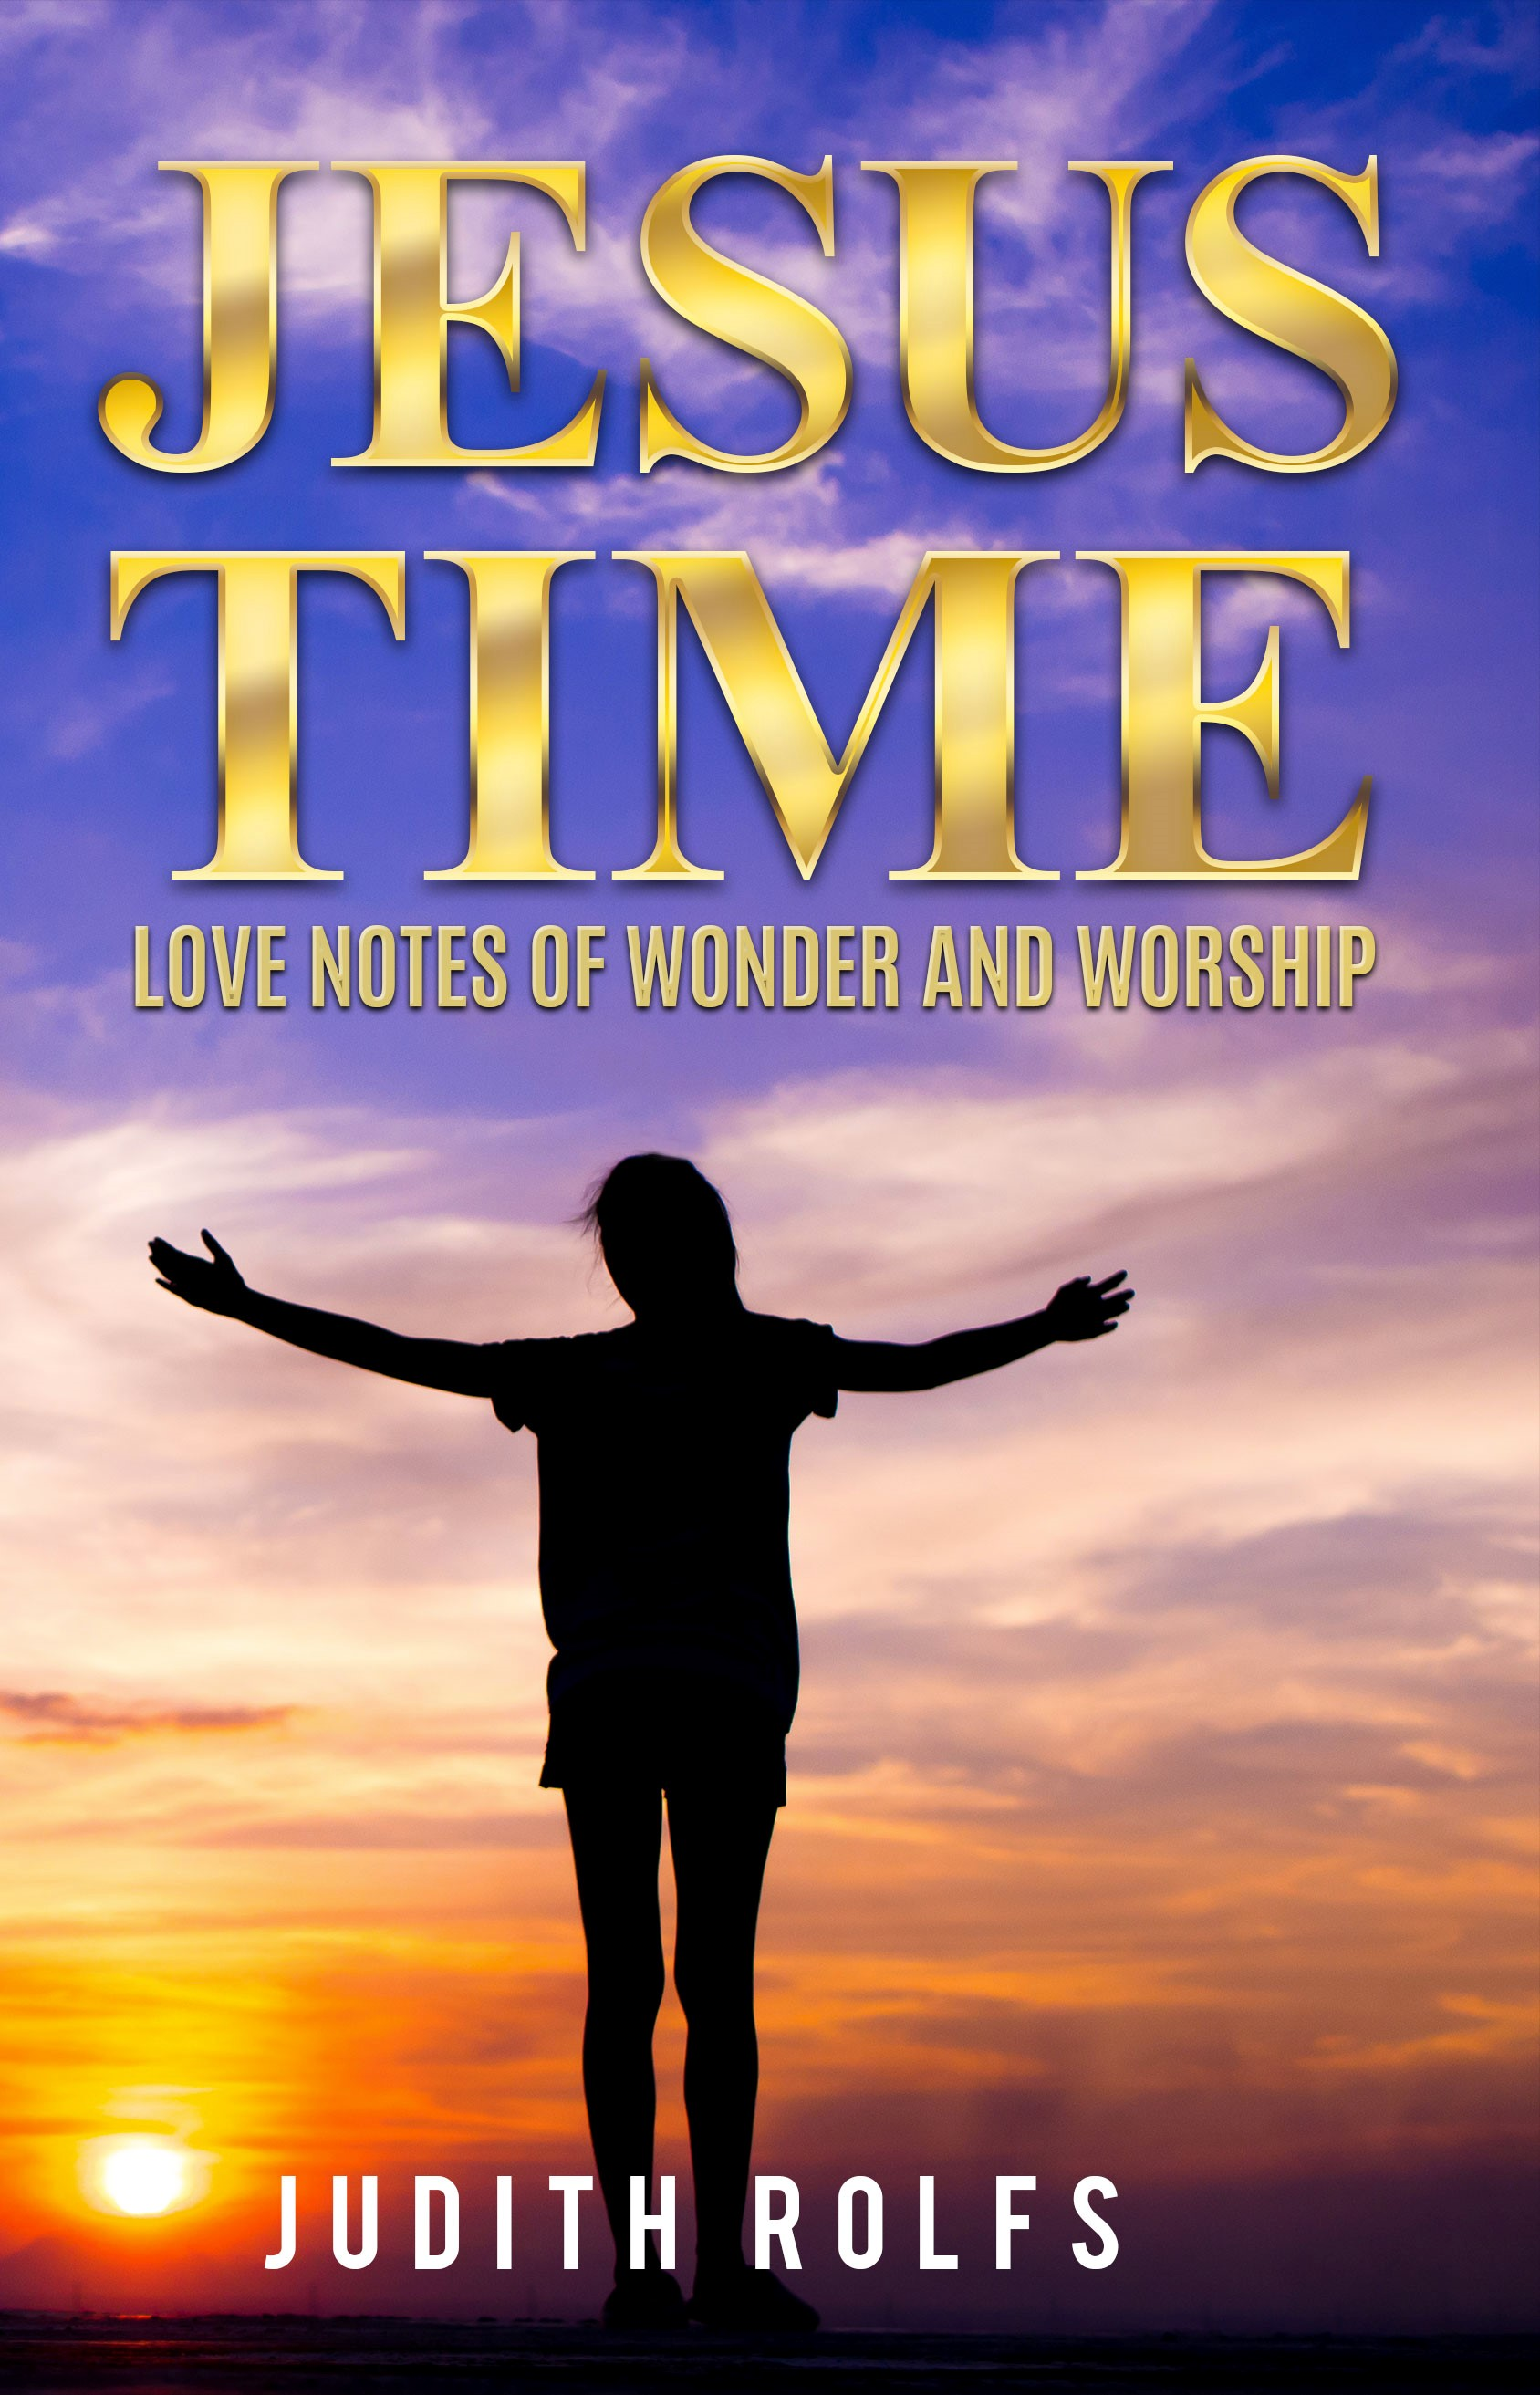 Jesus Time: Love Notes of Wonder and Worship by Judith Rolfs - interview with Cathe Swanson